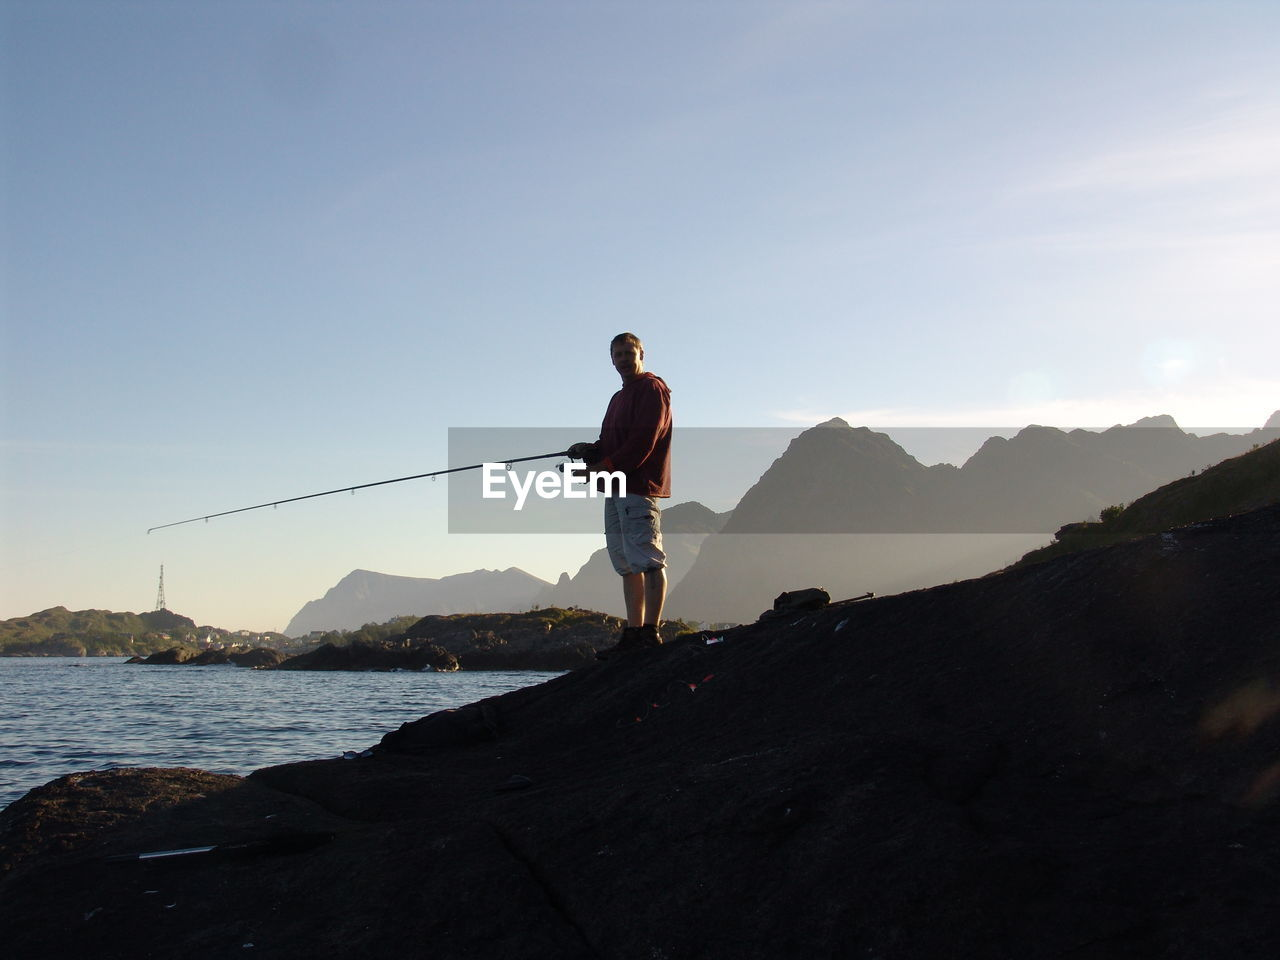 Man fishing at sea shore by mountains against sky